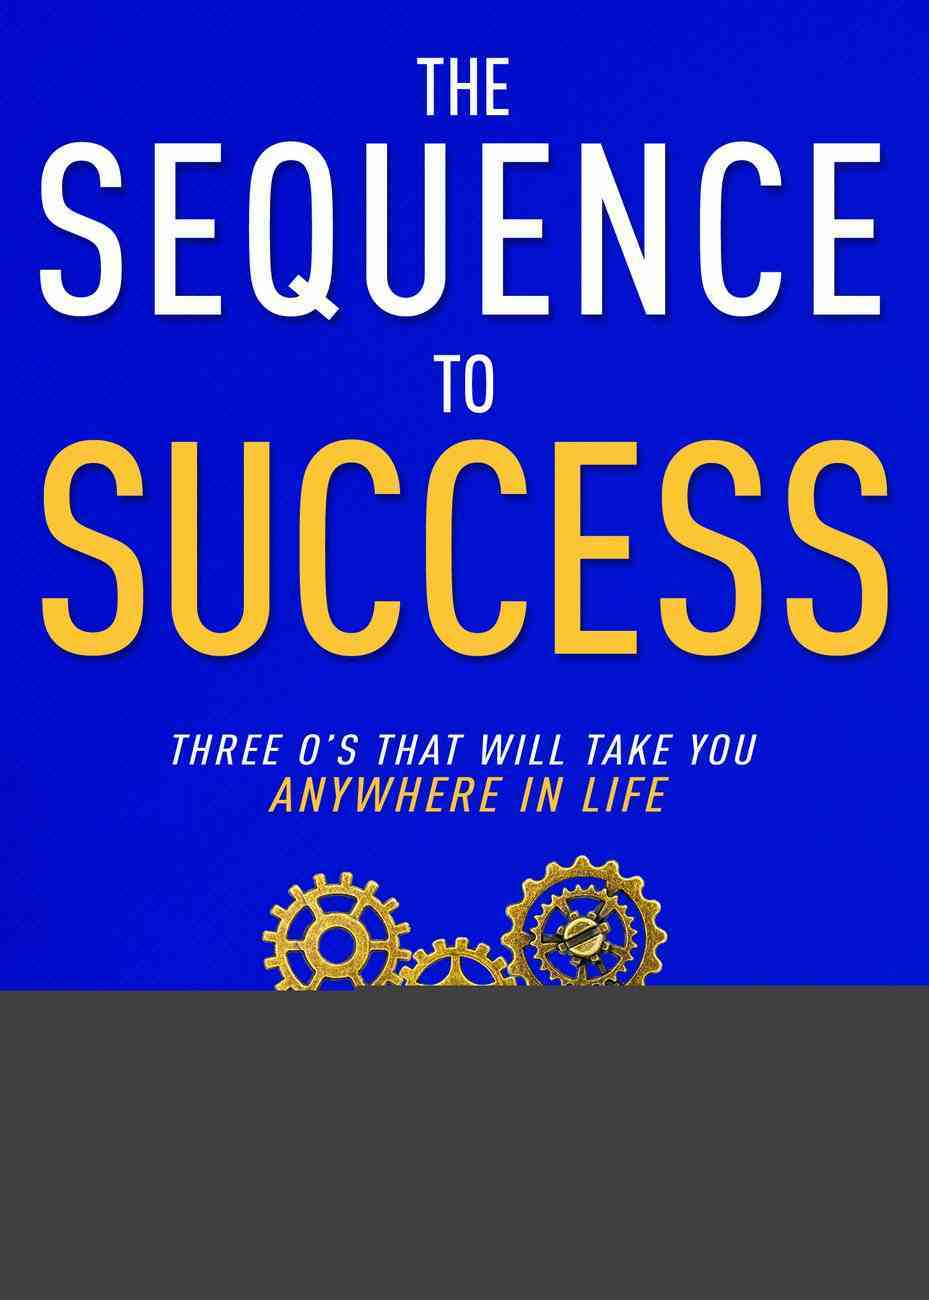 The Sequence to Success eBook